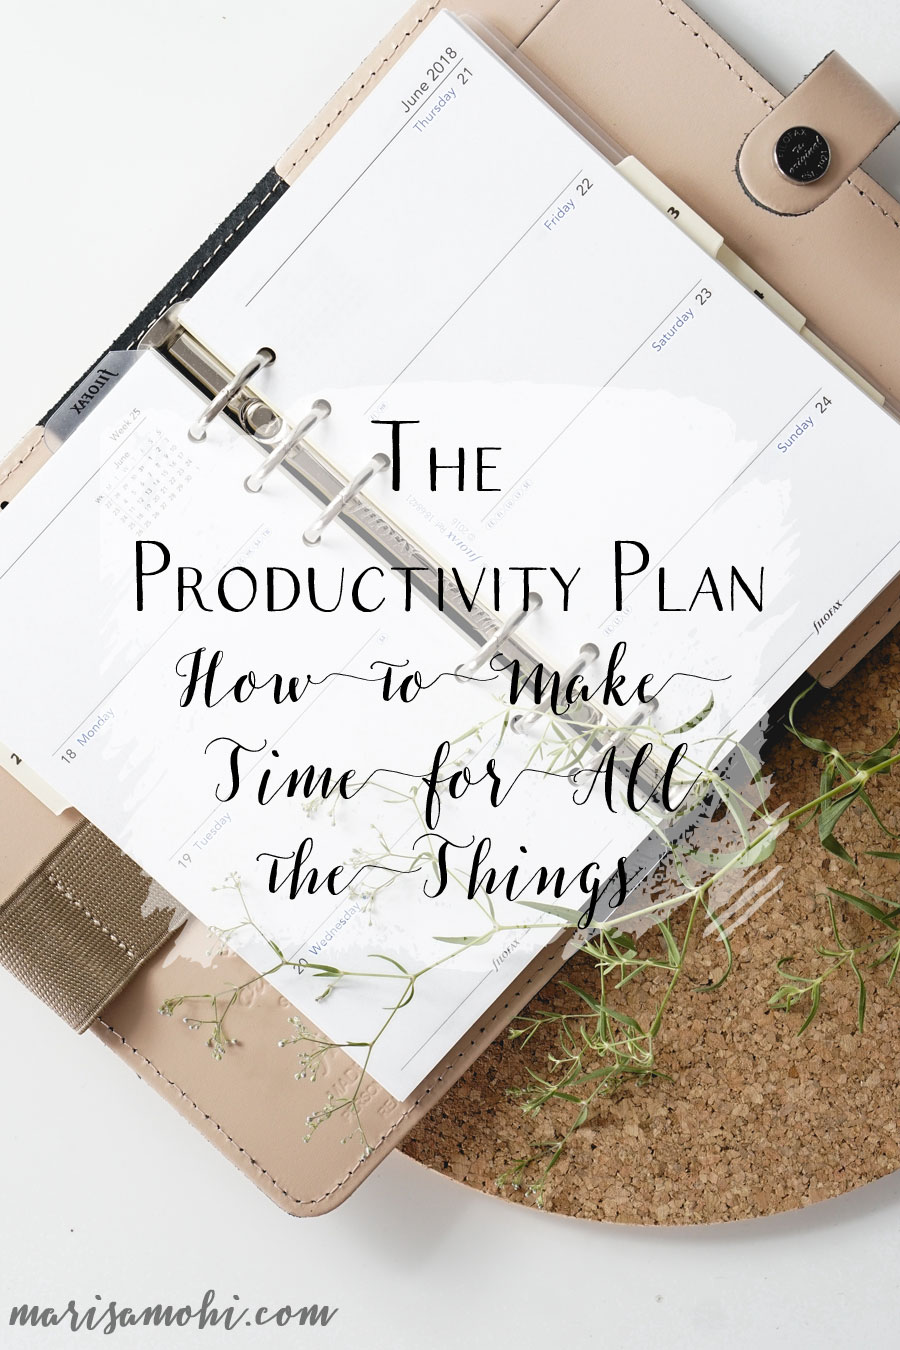 The Productivity Plan: How to Make Time for All the Things | Looking for a way to do all the things? You need my productivity plan to keep you on track.